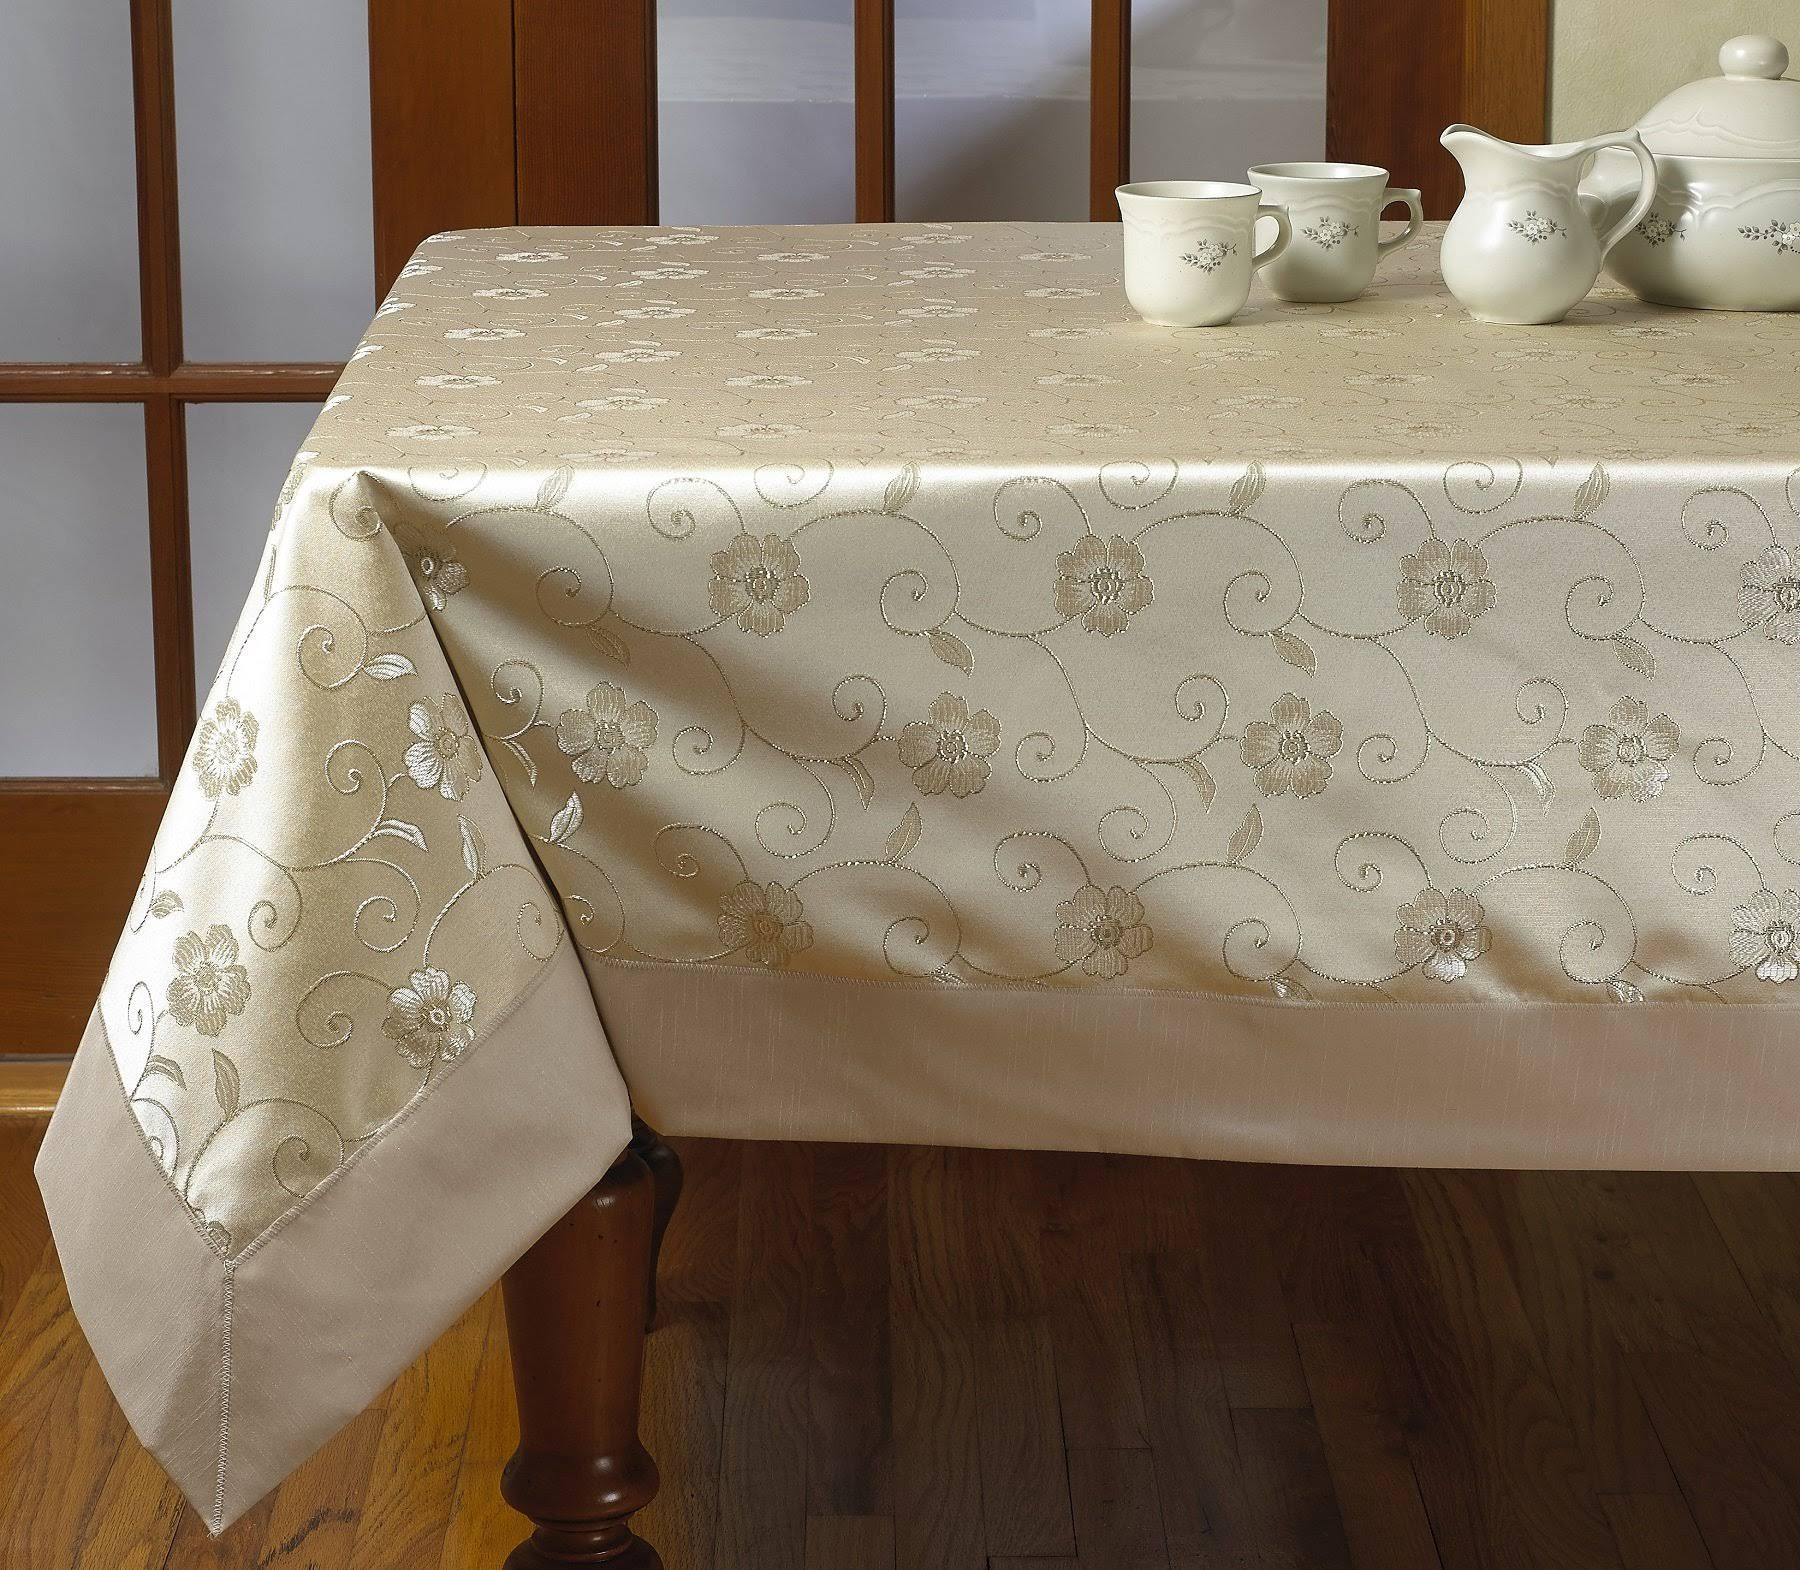 Violet Linen Elegant Embroidered Flower Design Tablecloths, Size: 70 inch x 88 inch, Gold